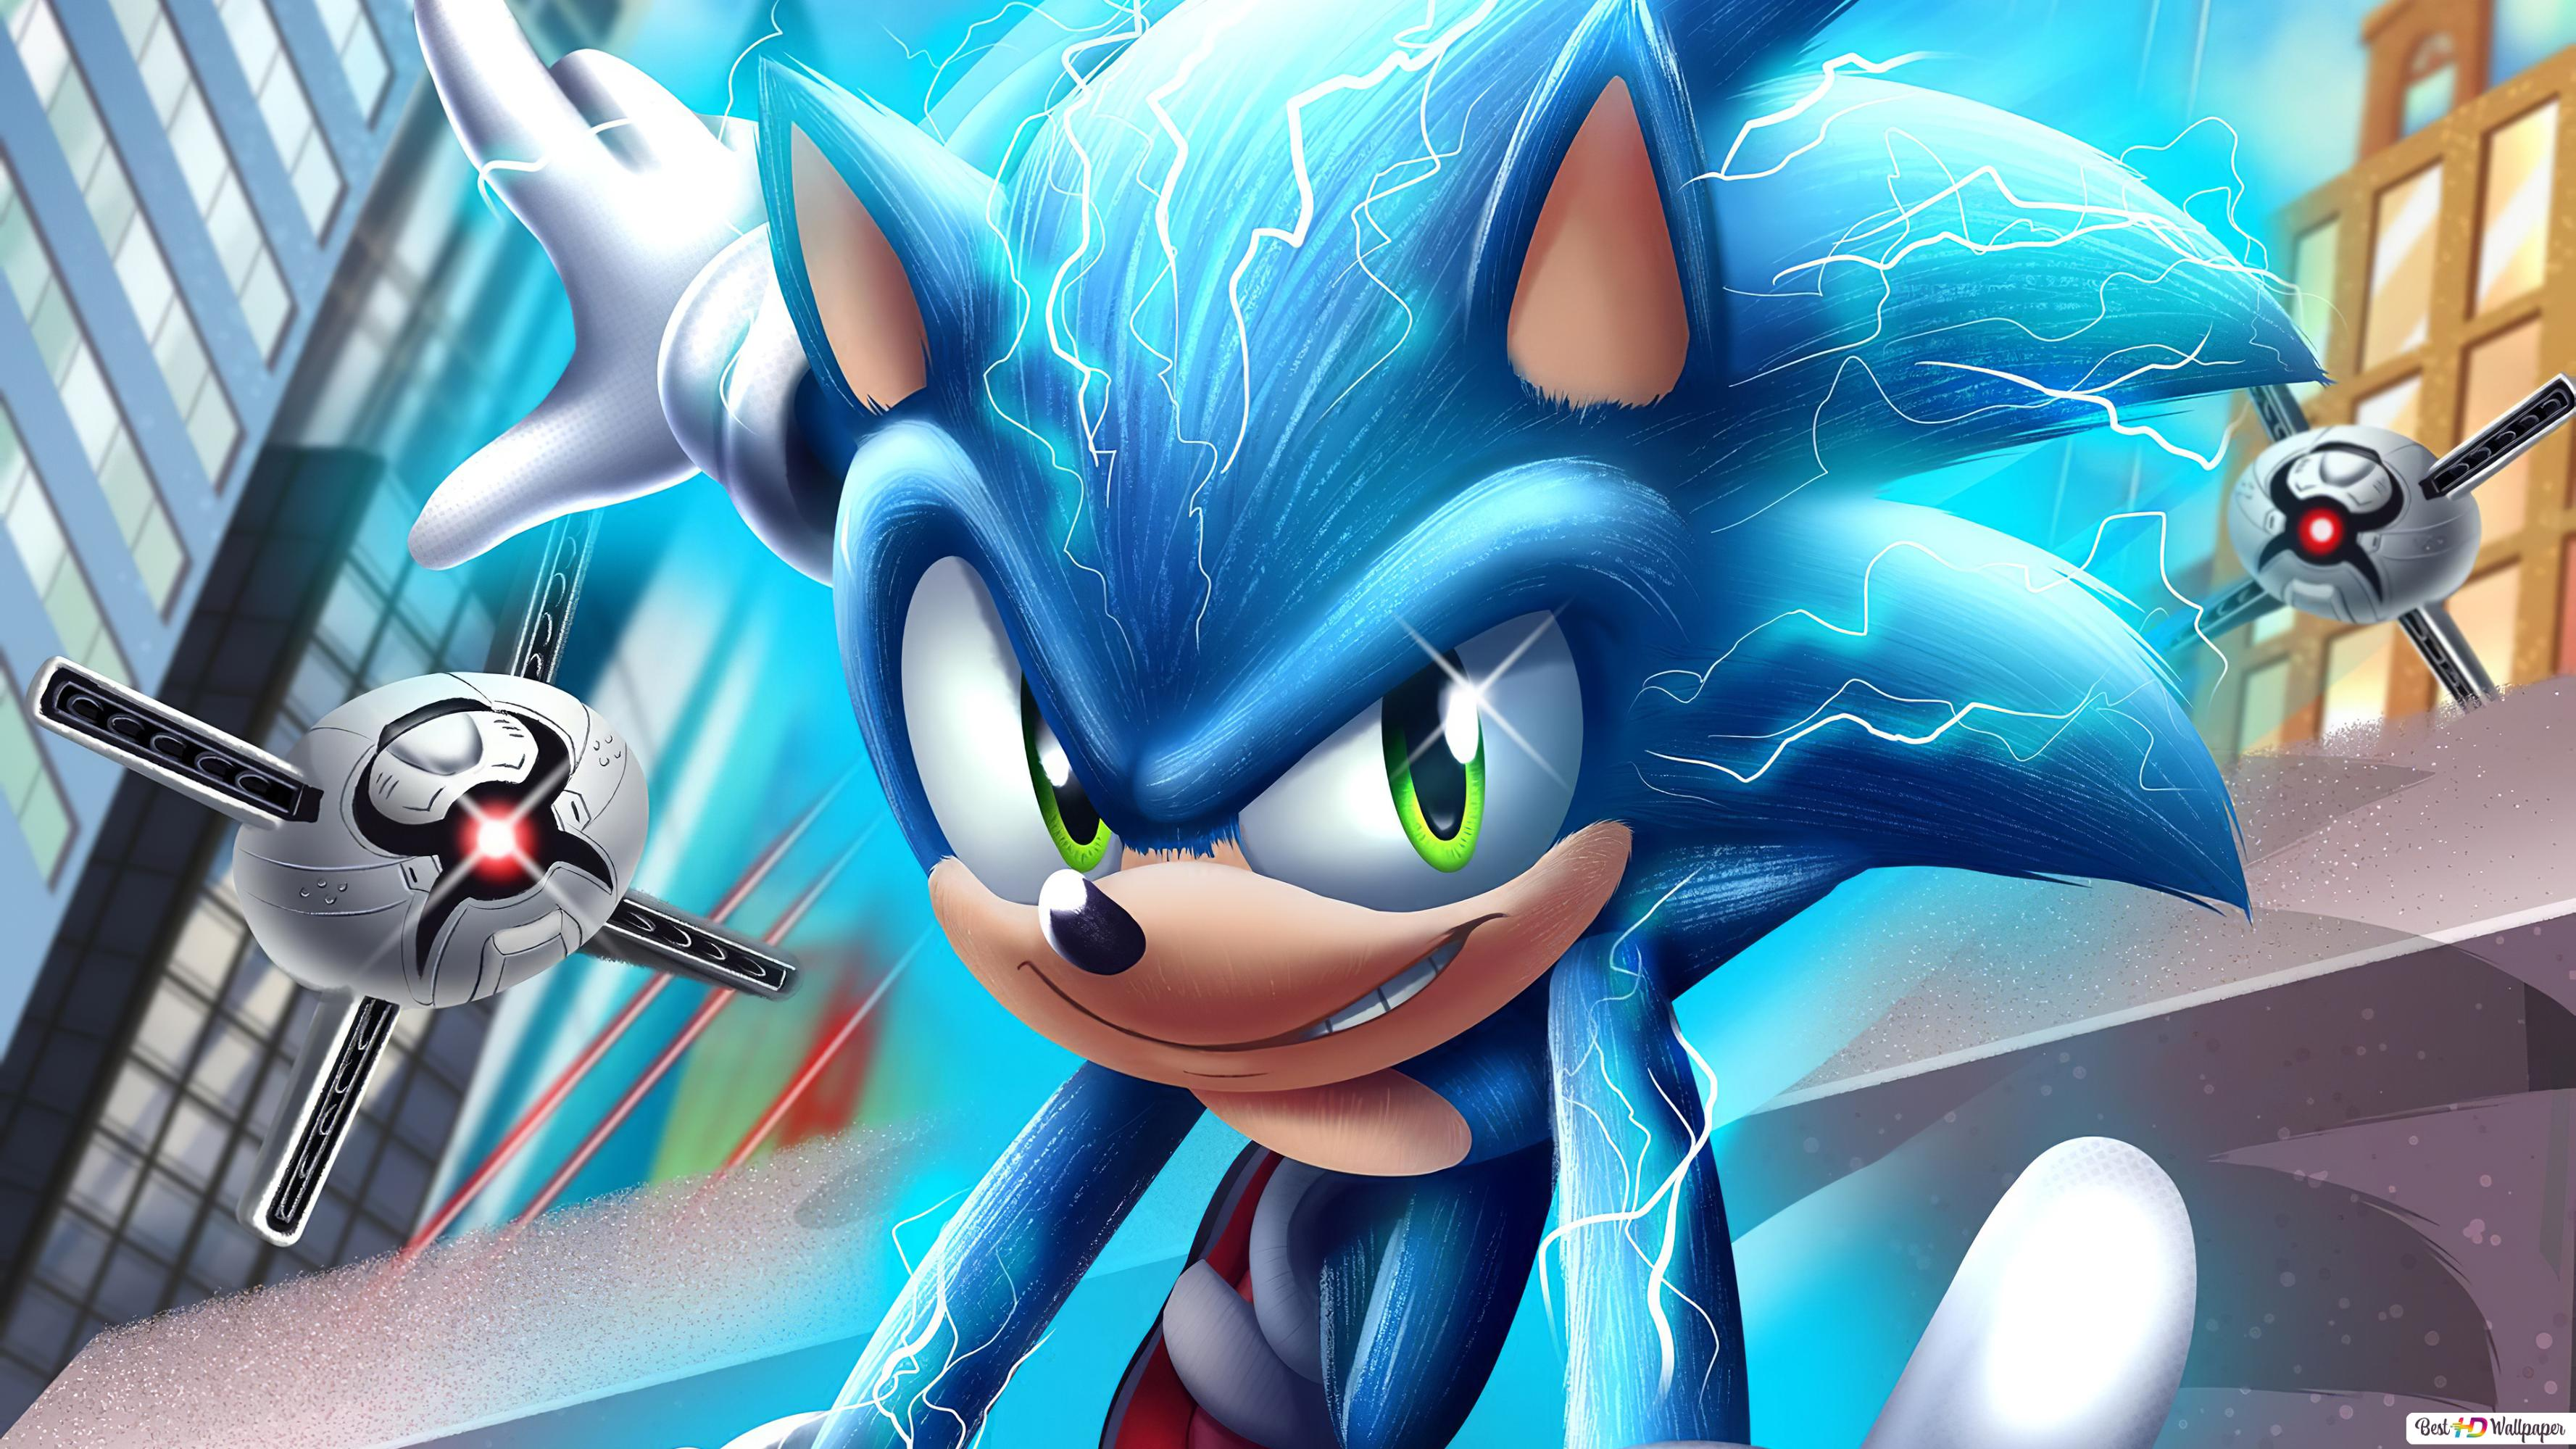 Movie Sonic The Hedgehog Hd Wallpaper Download